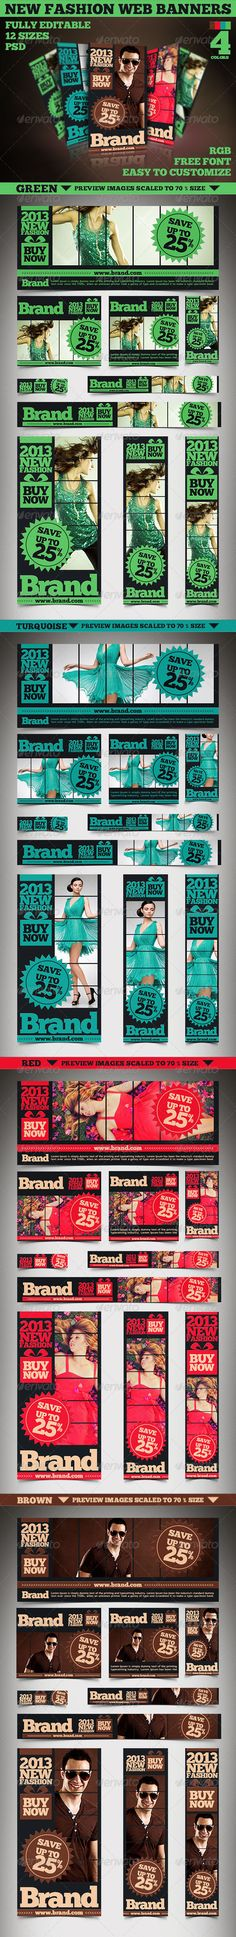 New Fashion Web Banners & Advertise Features RGB Easy to customize .psd http://startupstacks.com/web-elements/new-fashion-web-banners-advertise.html - free download